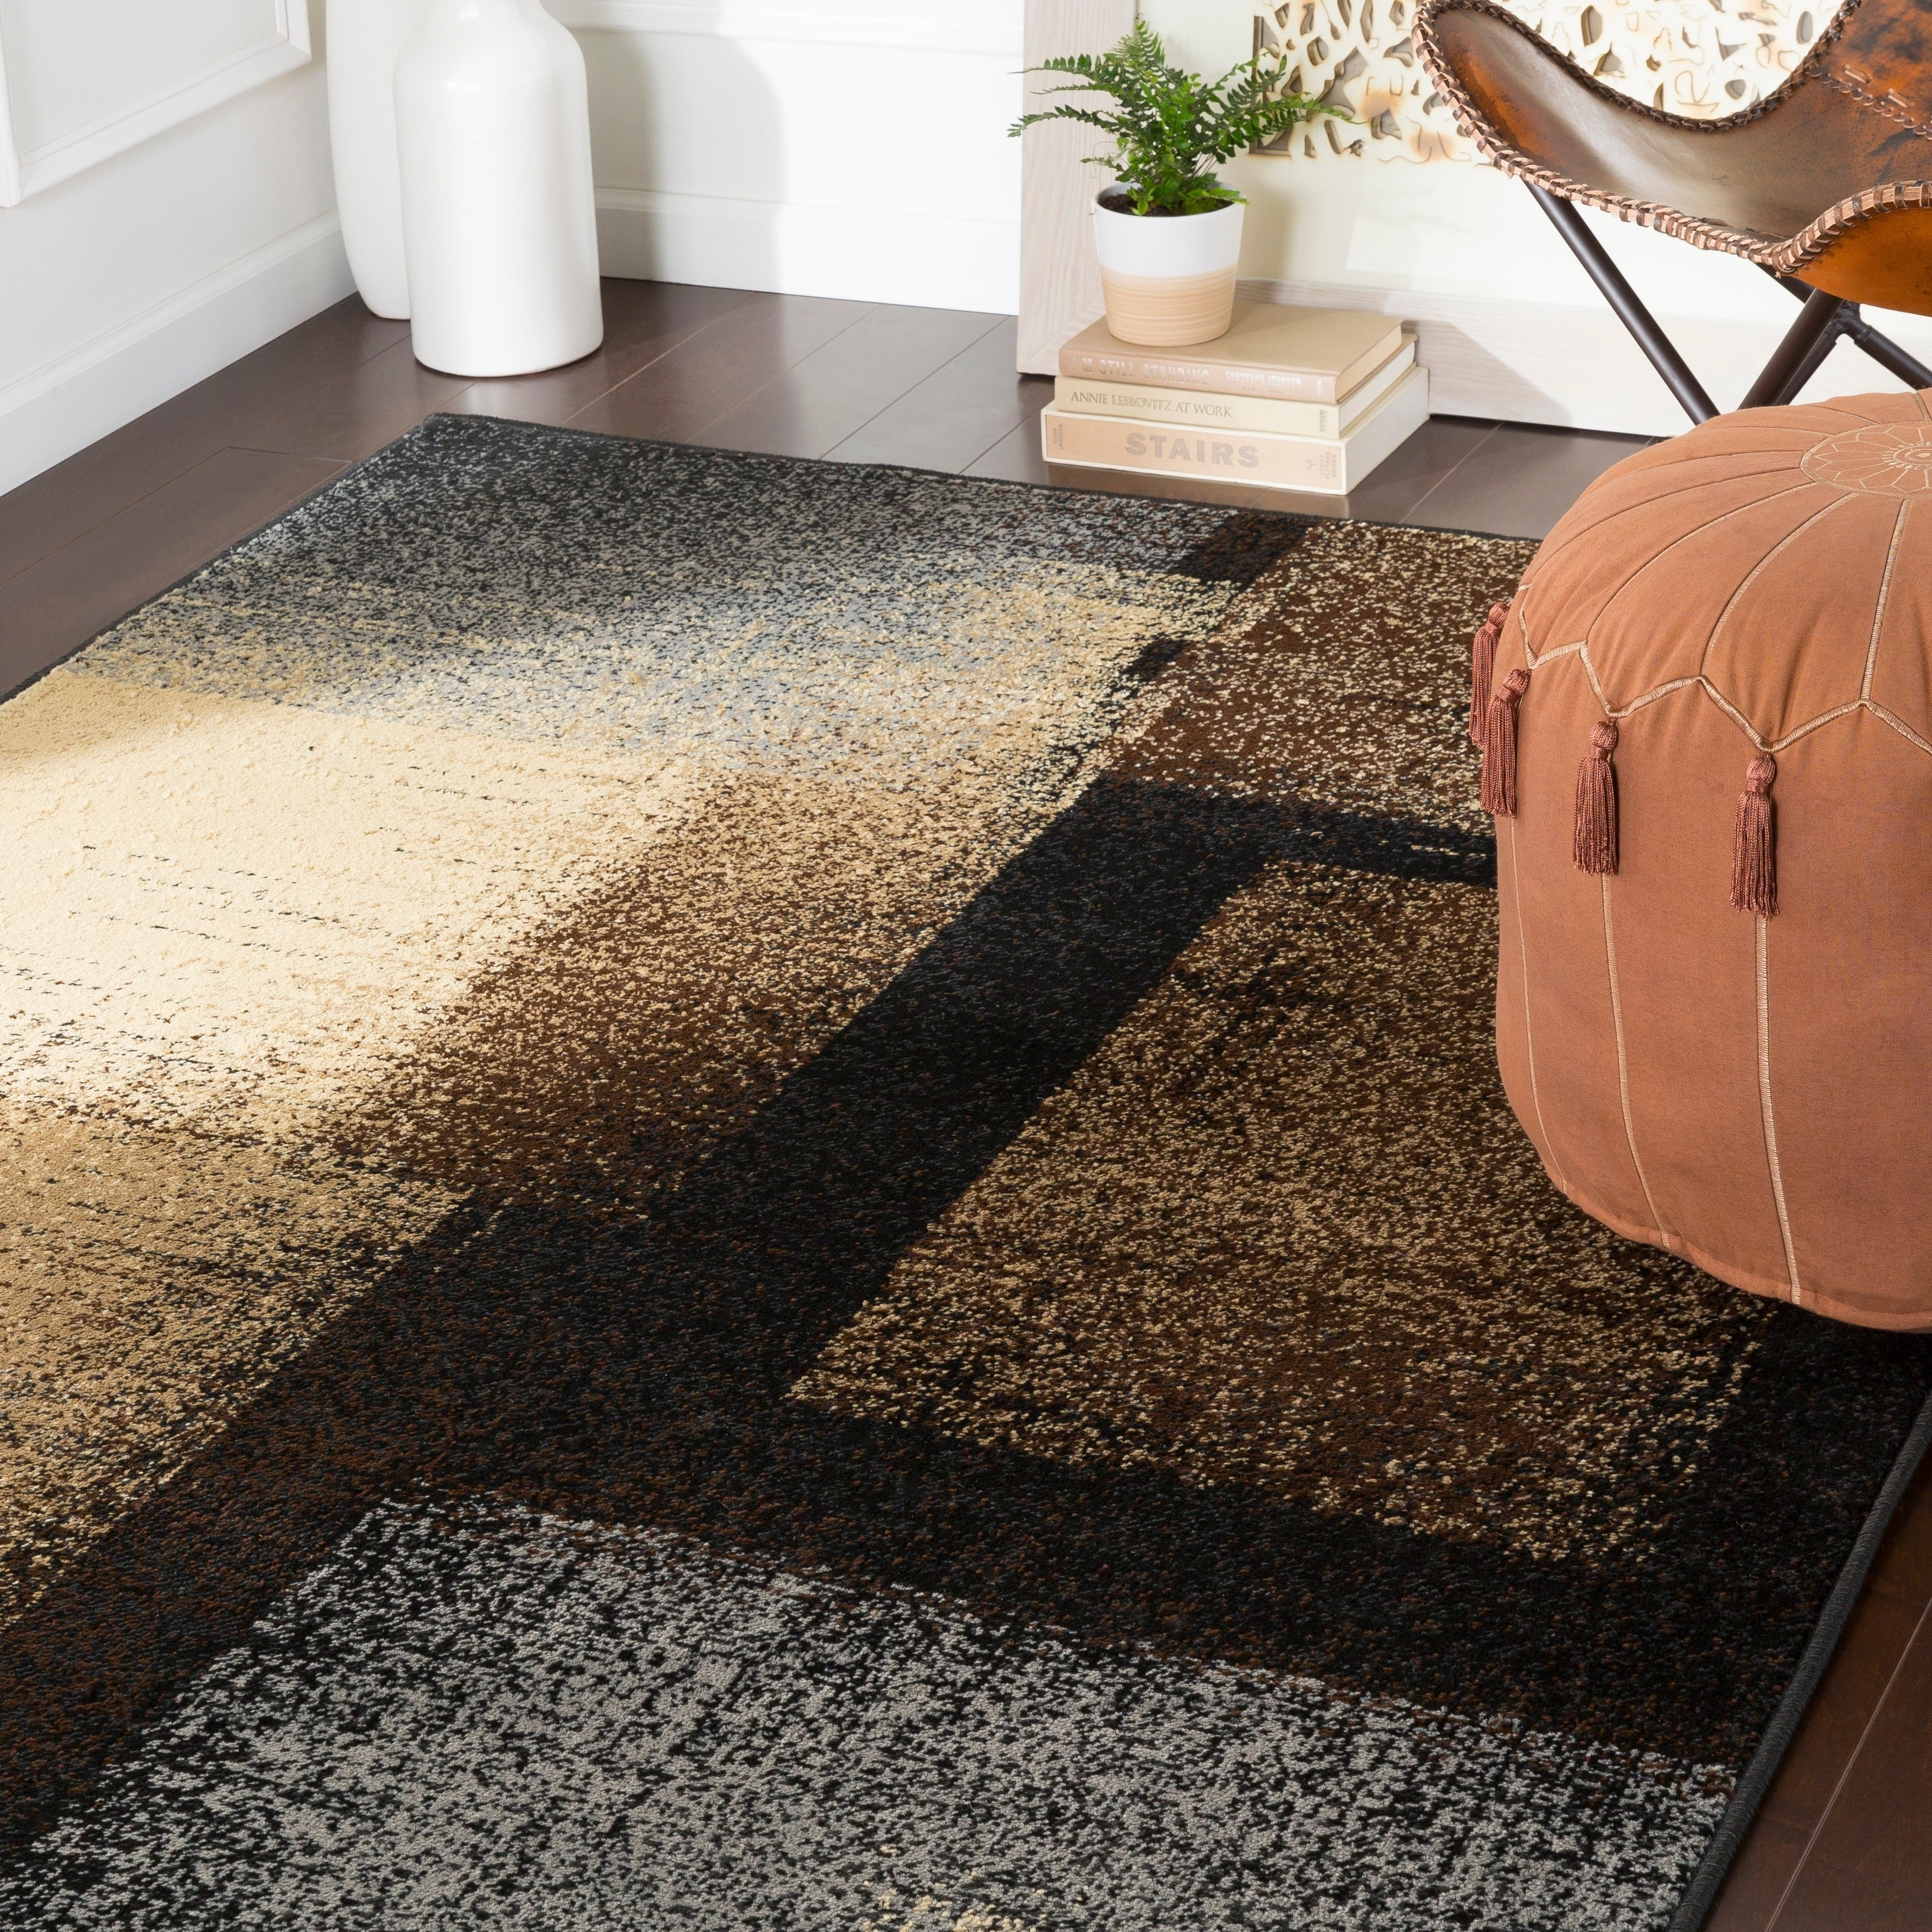 Hypatia Contemporary Brown Grey Area Rug 6 7 X 9 6 On Sale Overstock 22403101